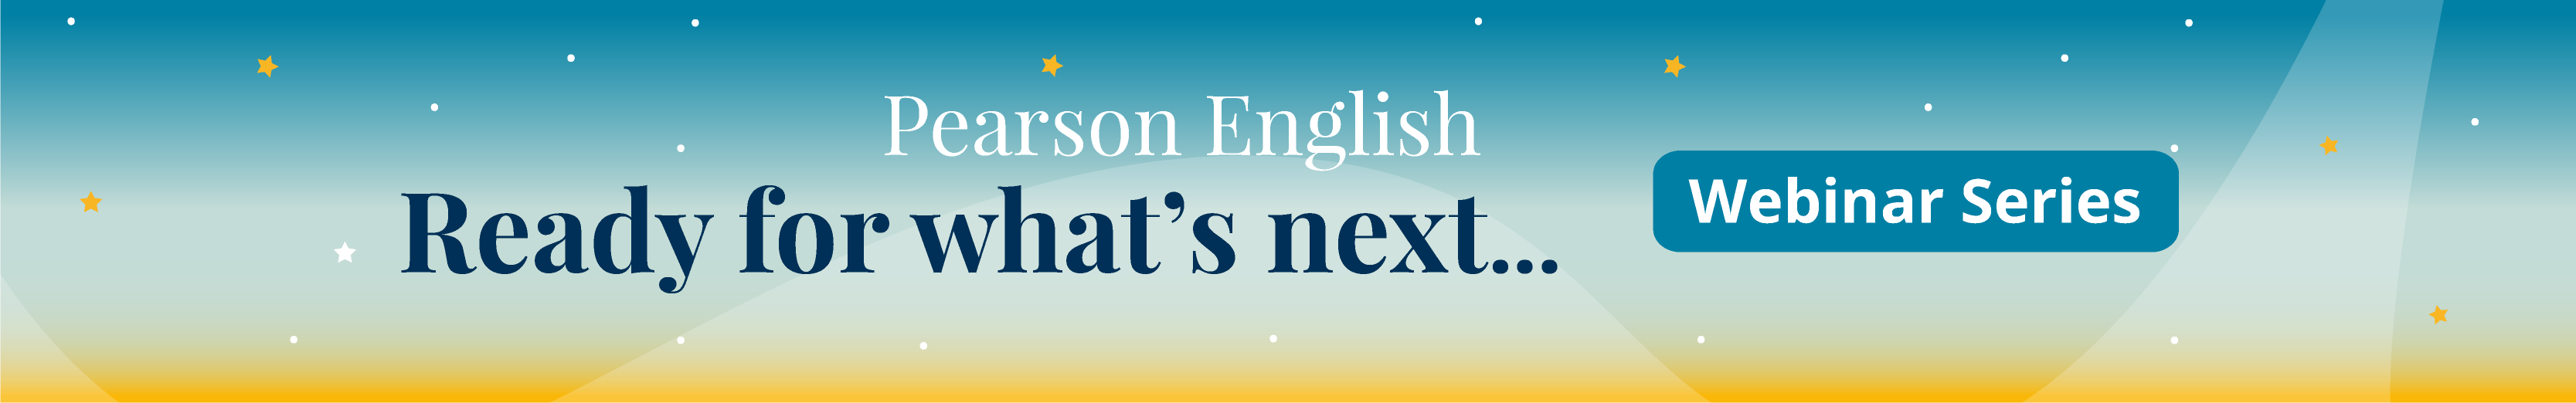 Ready for what's next webinar series banner